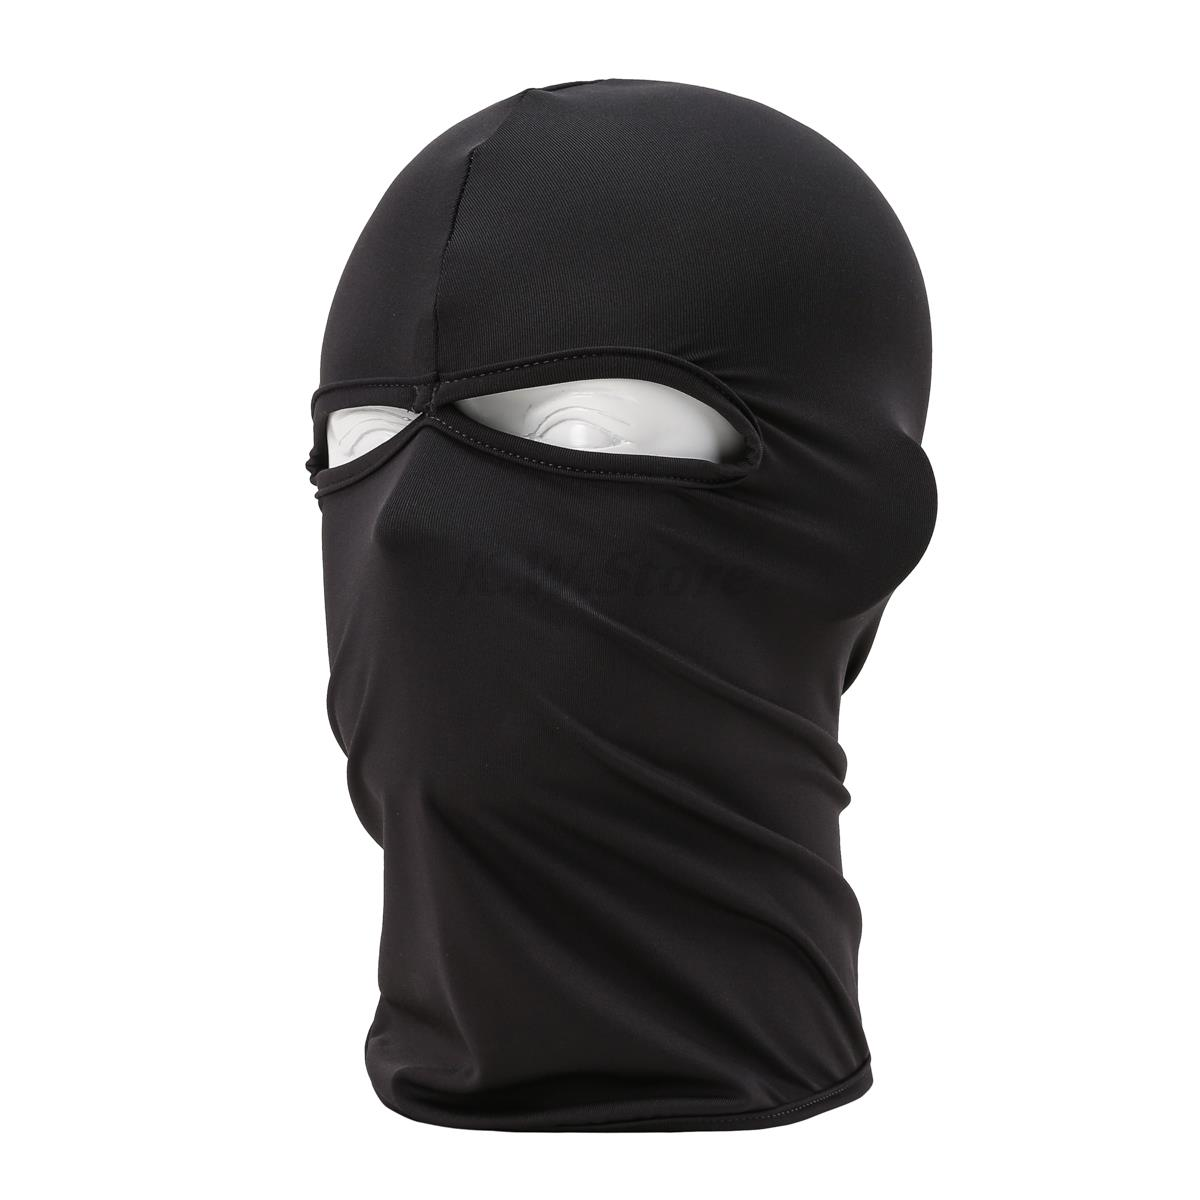 New Motorcycle Bike Hunting Cycling Cap Headwear 2 Hole Full Face Mask Balaclava Hat Military Tactical